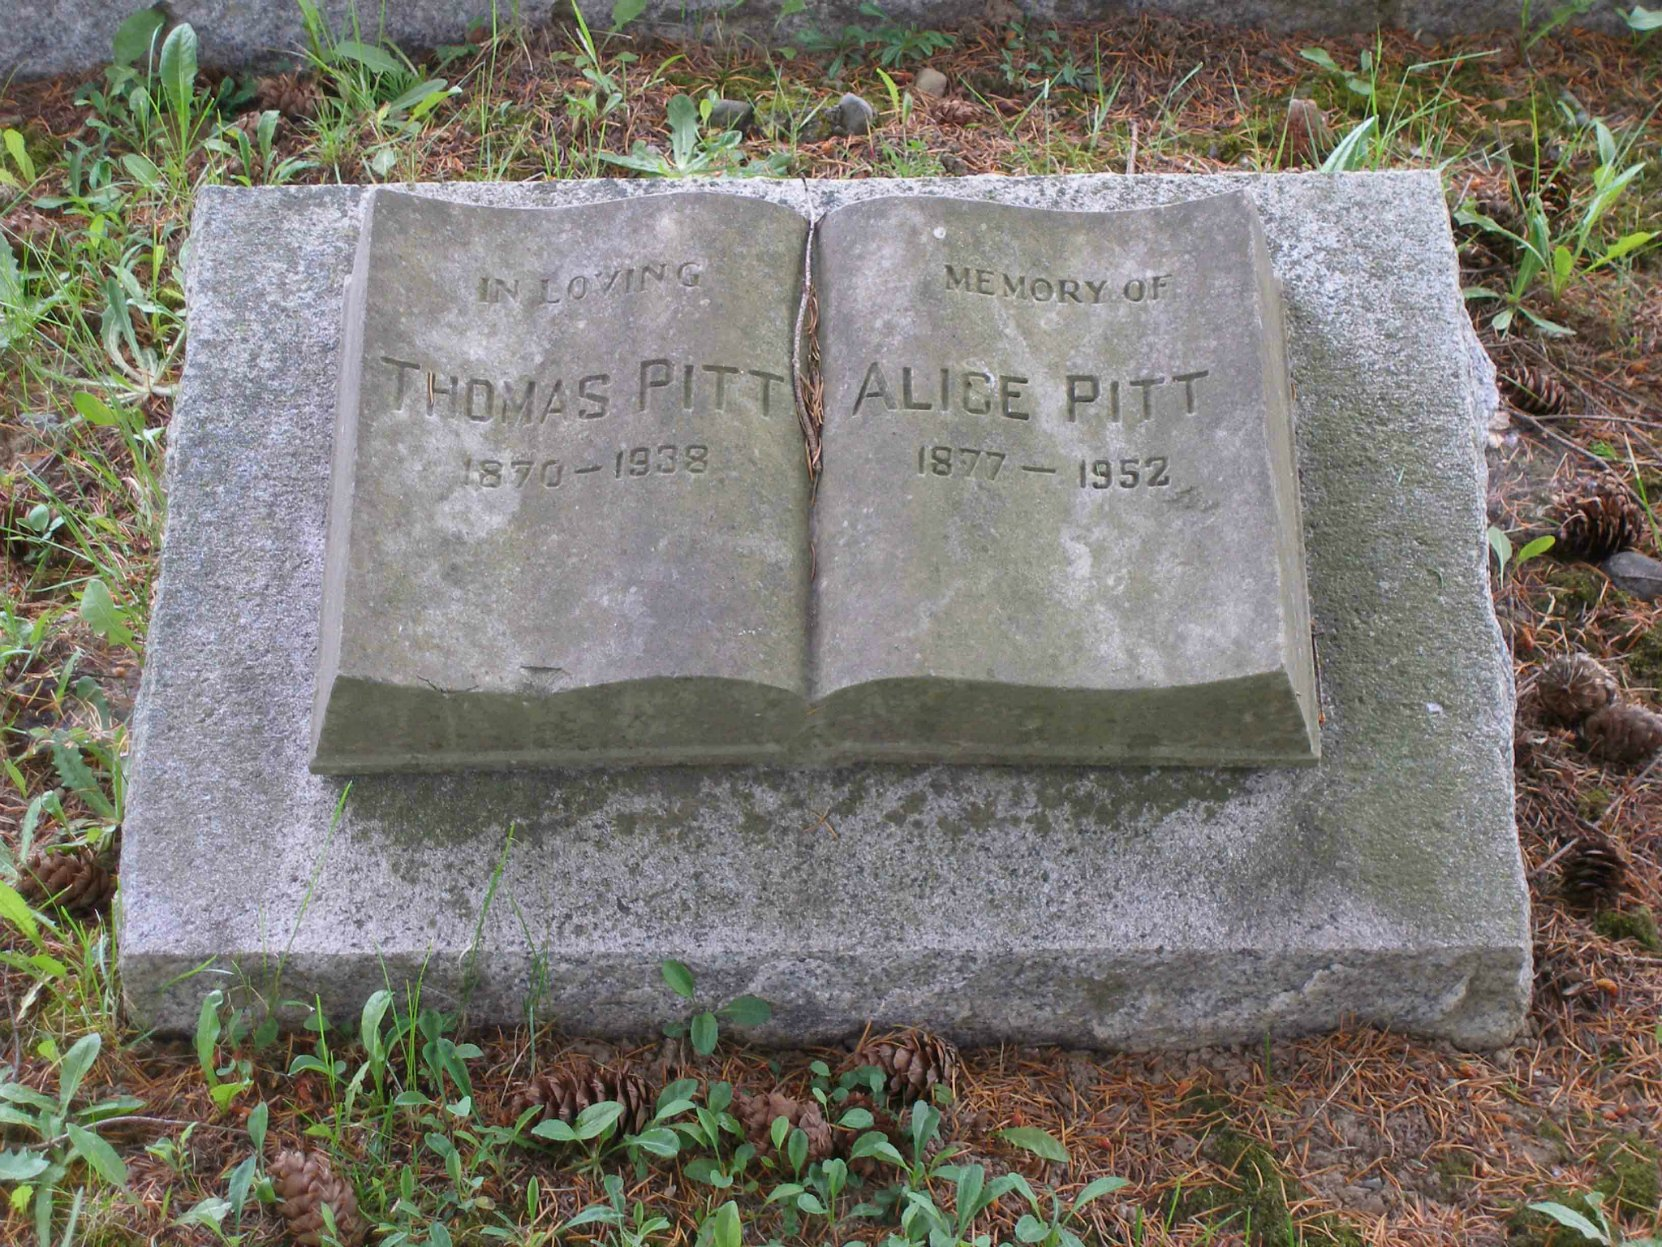 Marker of grave of Thomas Pitt and Alice Pitt, Mountain View cemetery, North Cowichan, B.C.